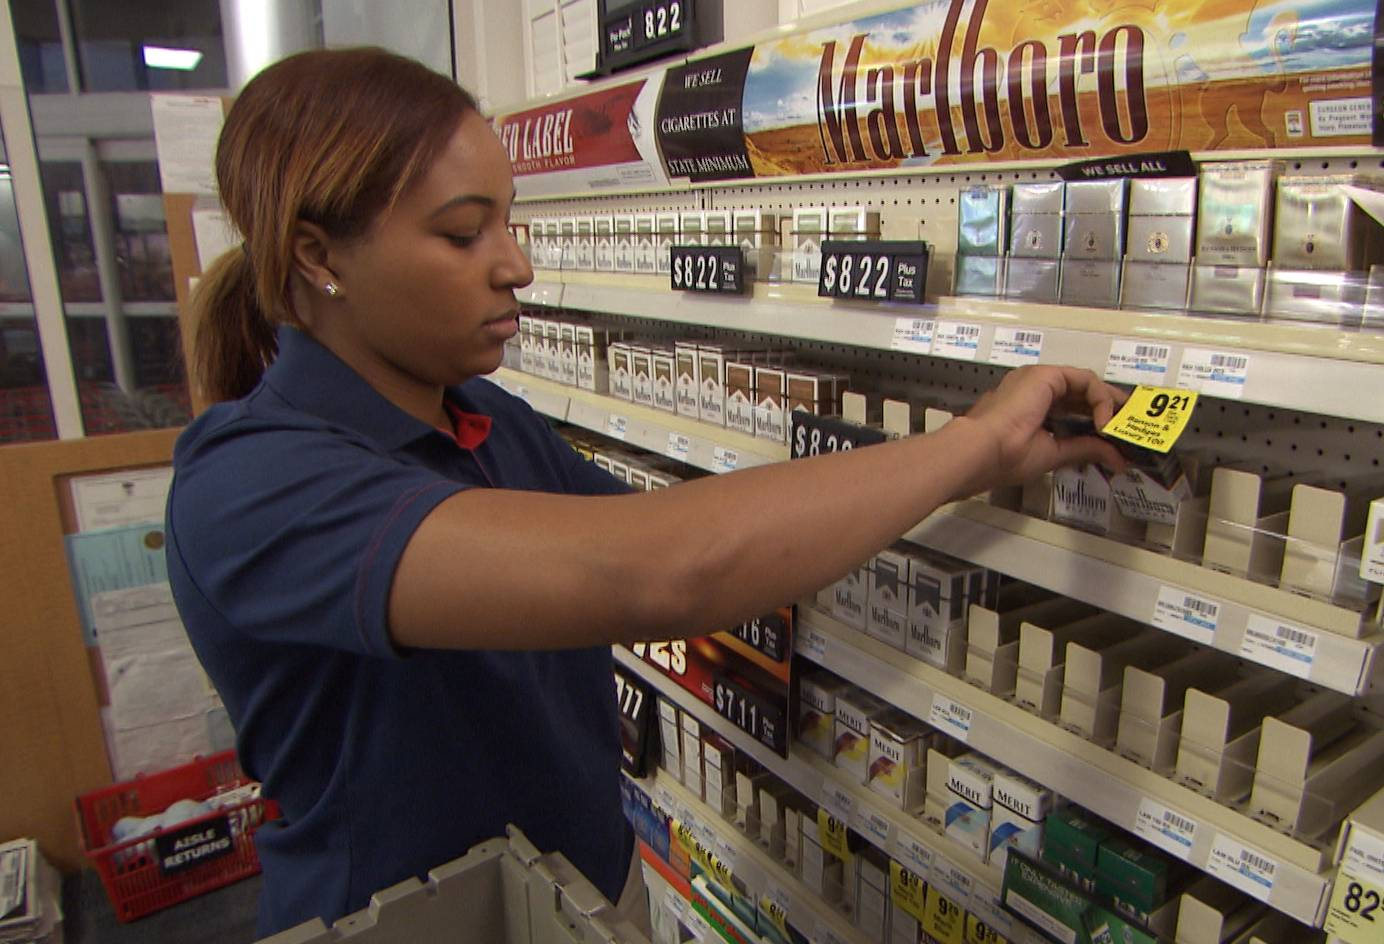 A CVS store employee removes tobacco products from the store shelves in East Greenwich, R.I.